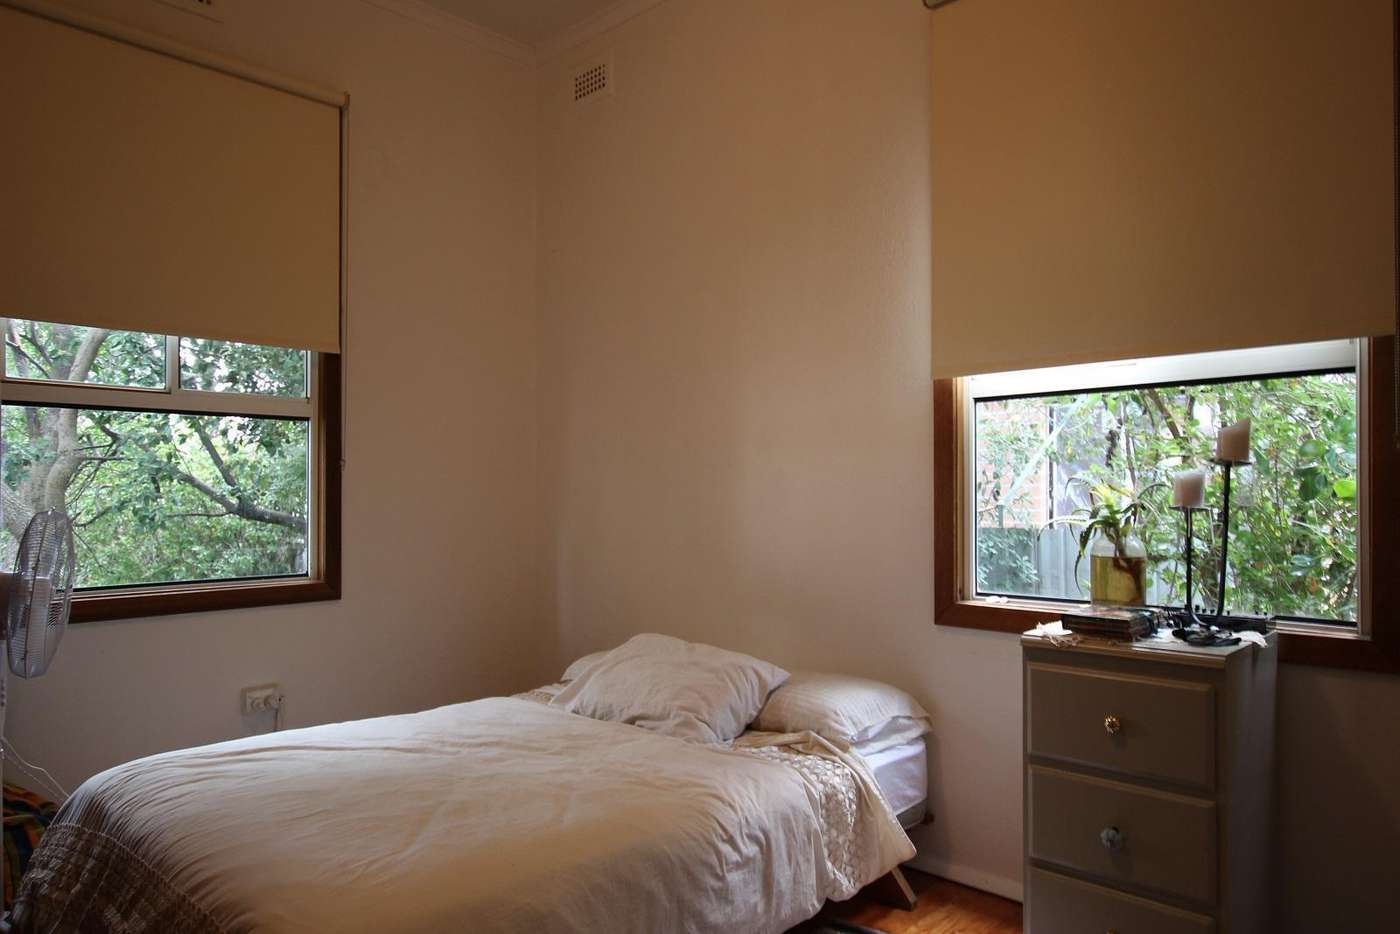 Sixth view of Homely house listing, 10 Foley Avenue, Preston VIC 3072